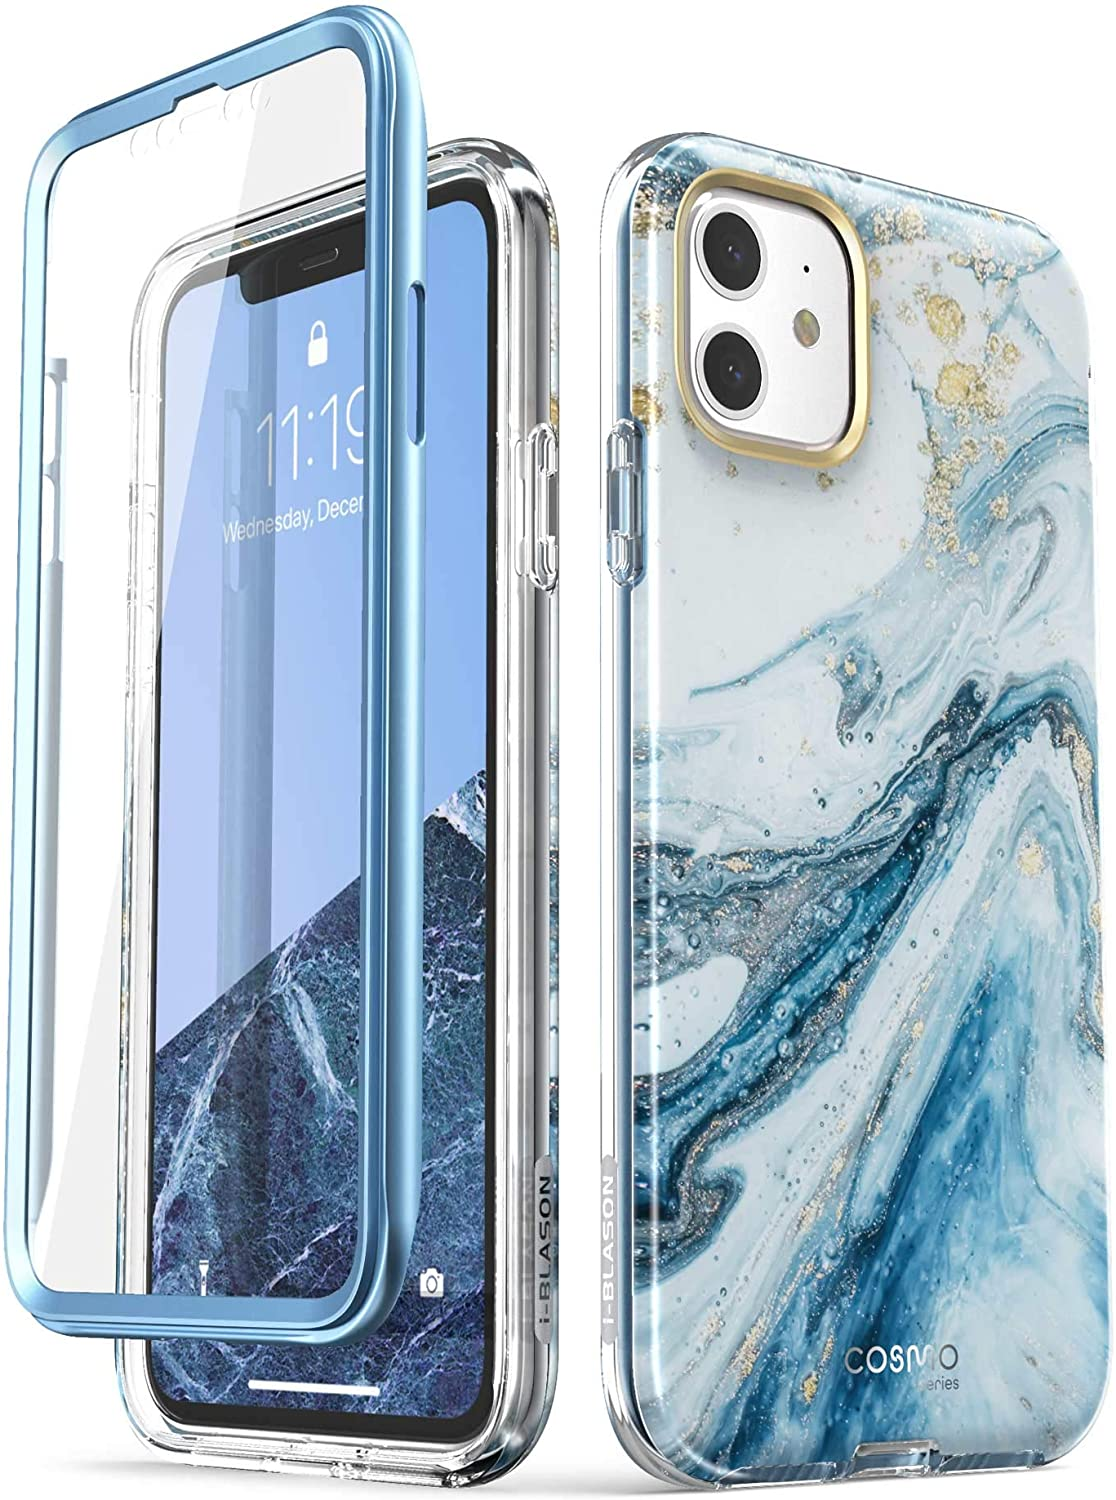 i-Blason Cosmo Series Case for iPhone 11 (2019 Release), Slim Full-Body Stylish Protective Case with Built-in Screen Protector, Blue, 6.1''